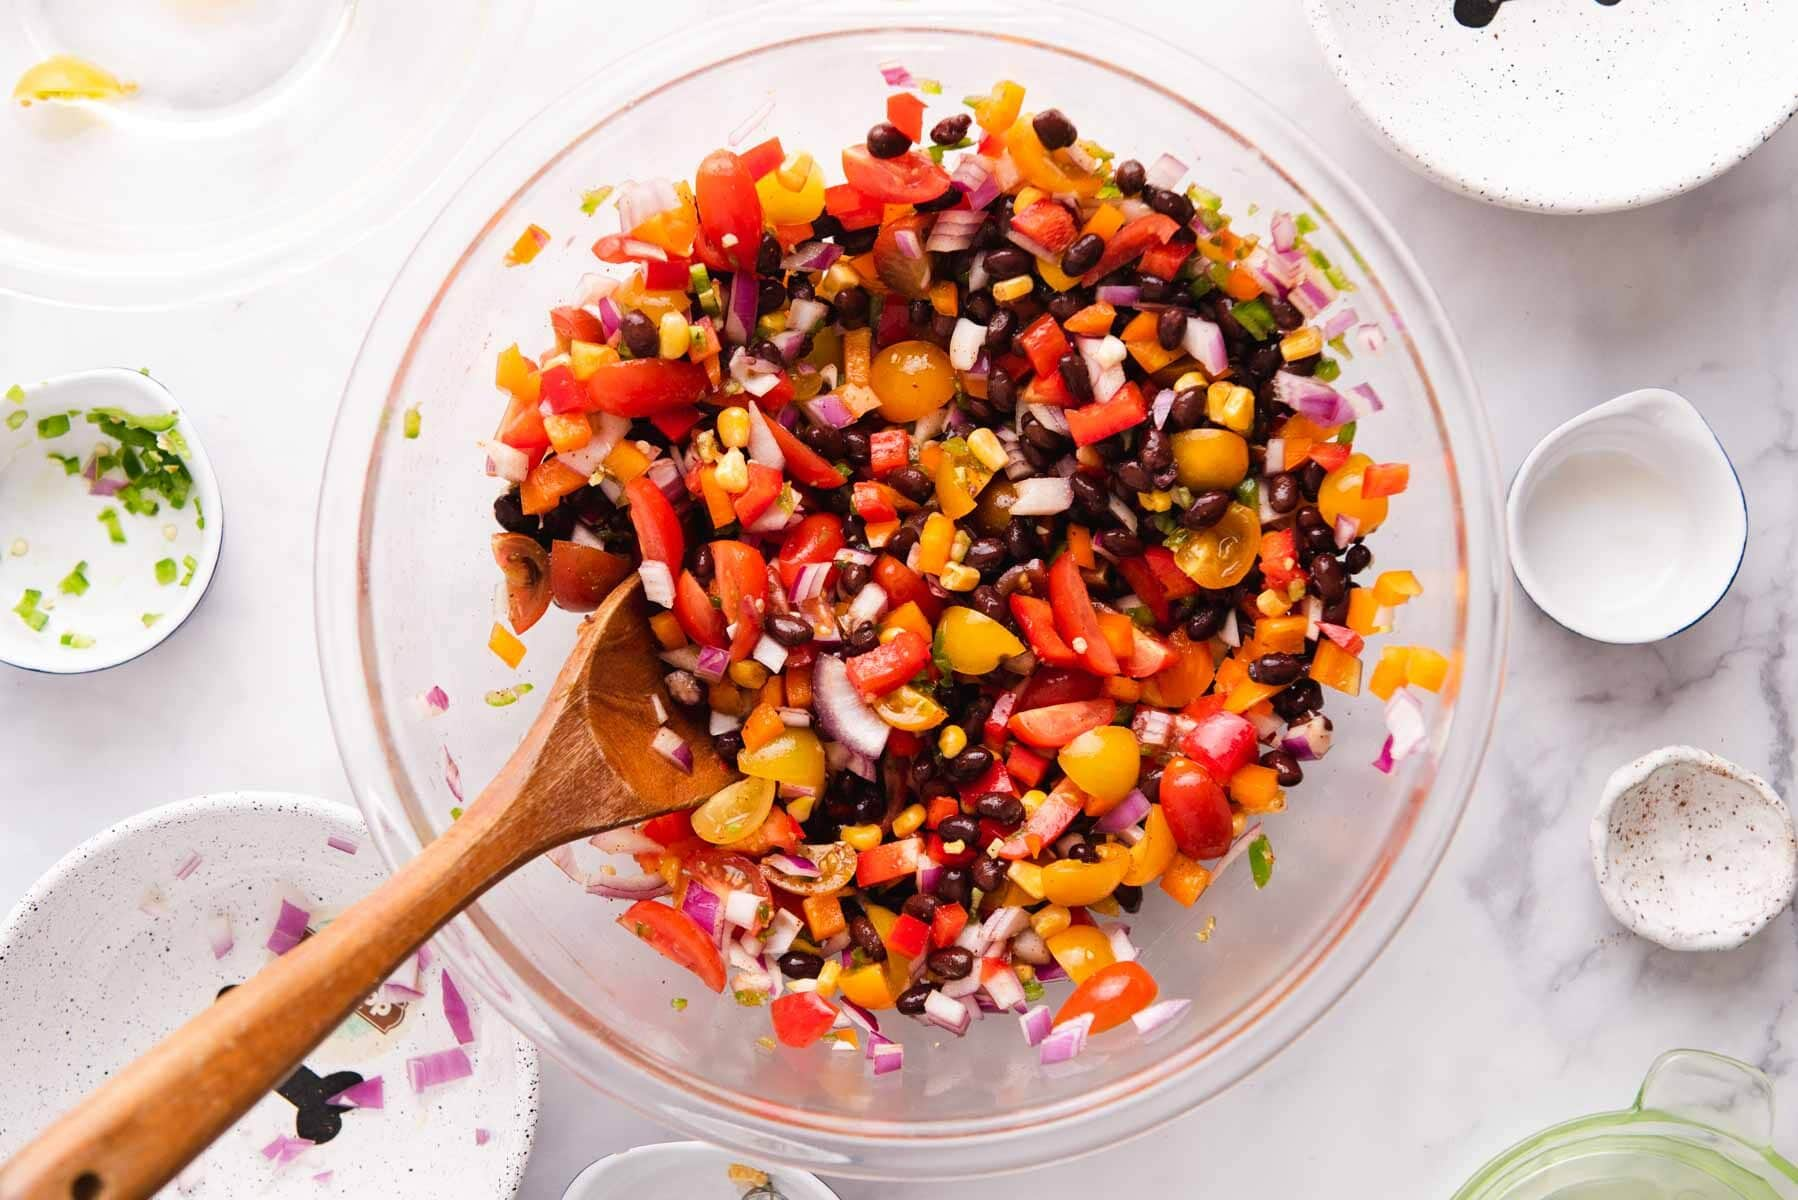 Overhead view of large glass bowl filled with black bean salsa